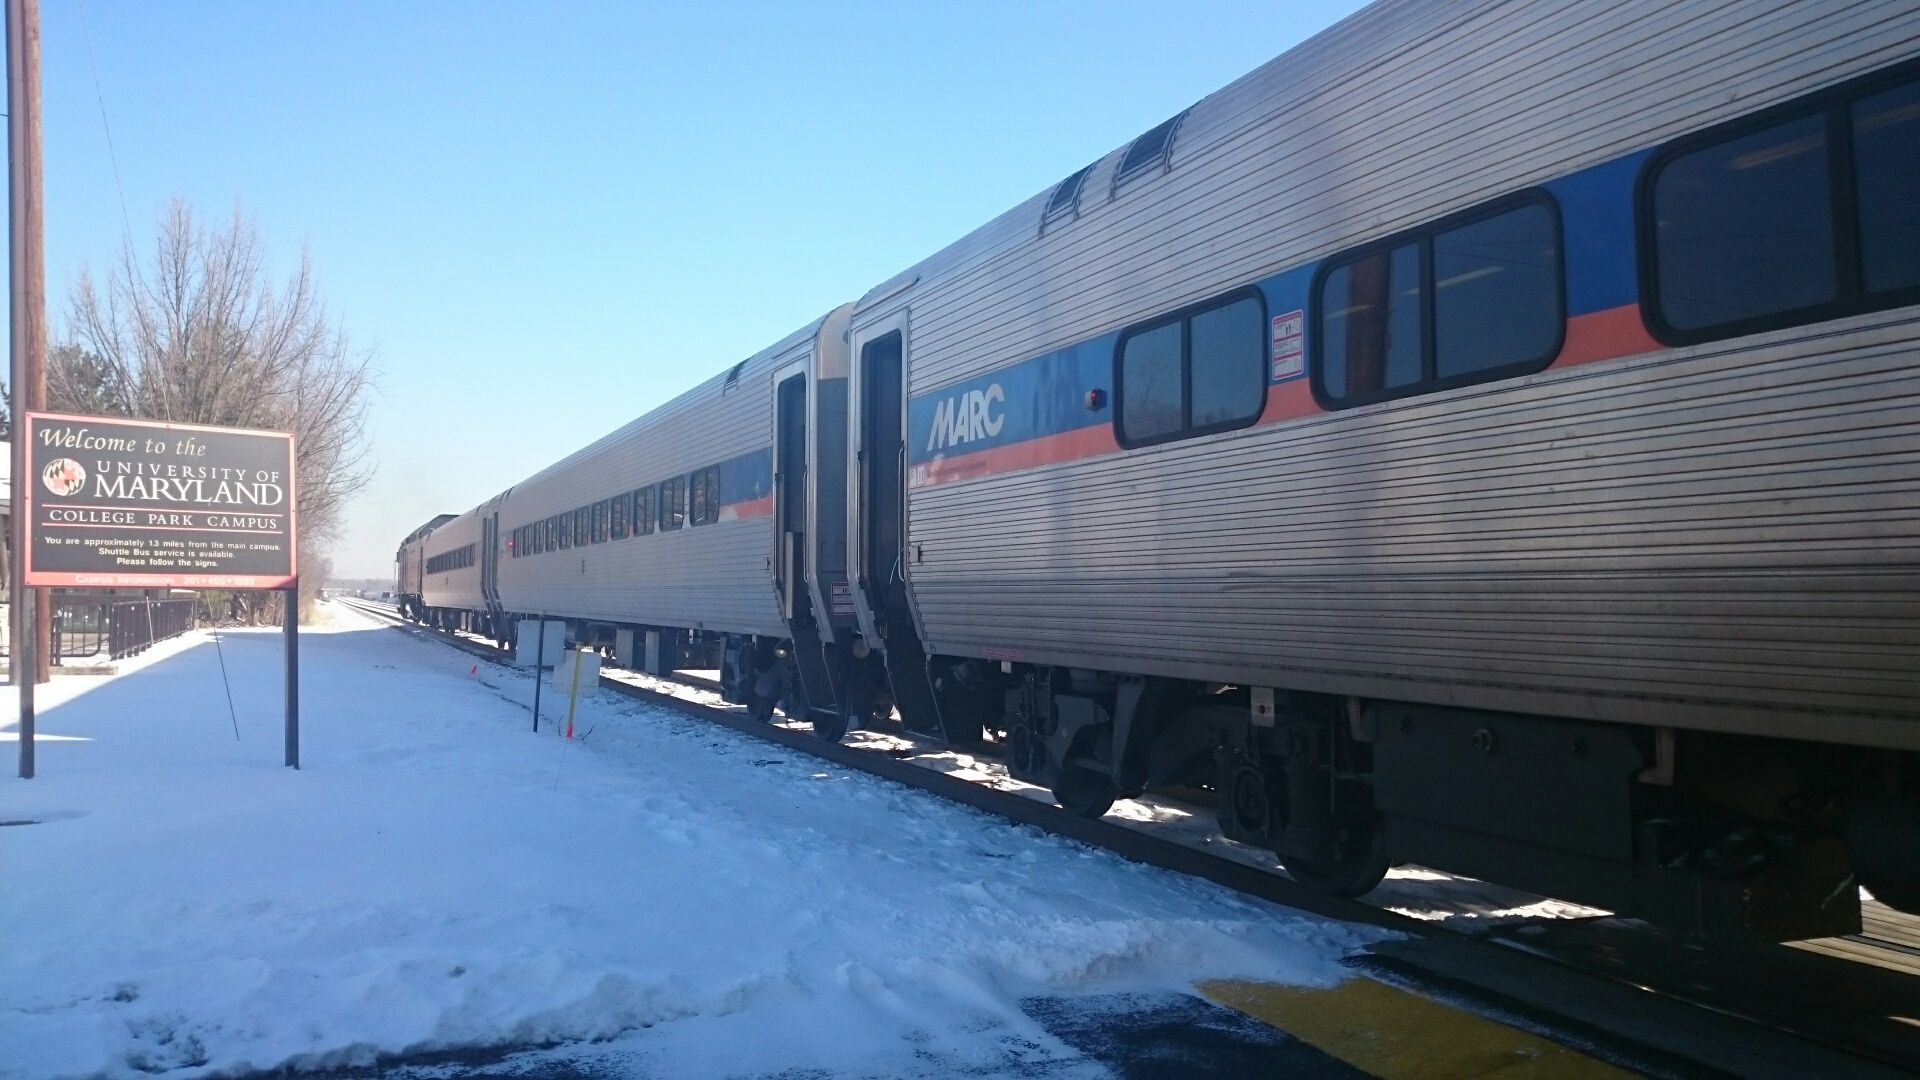 Frozen switches caused MARC delays